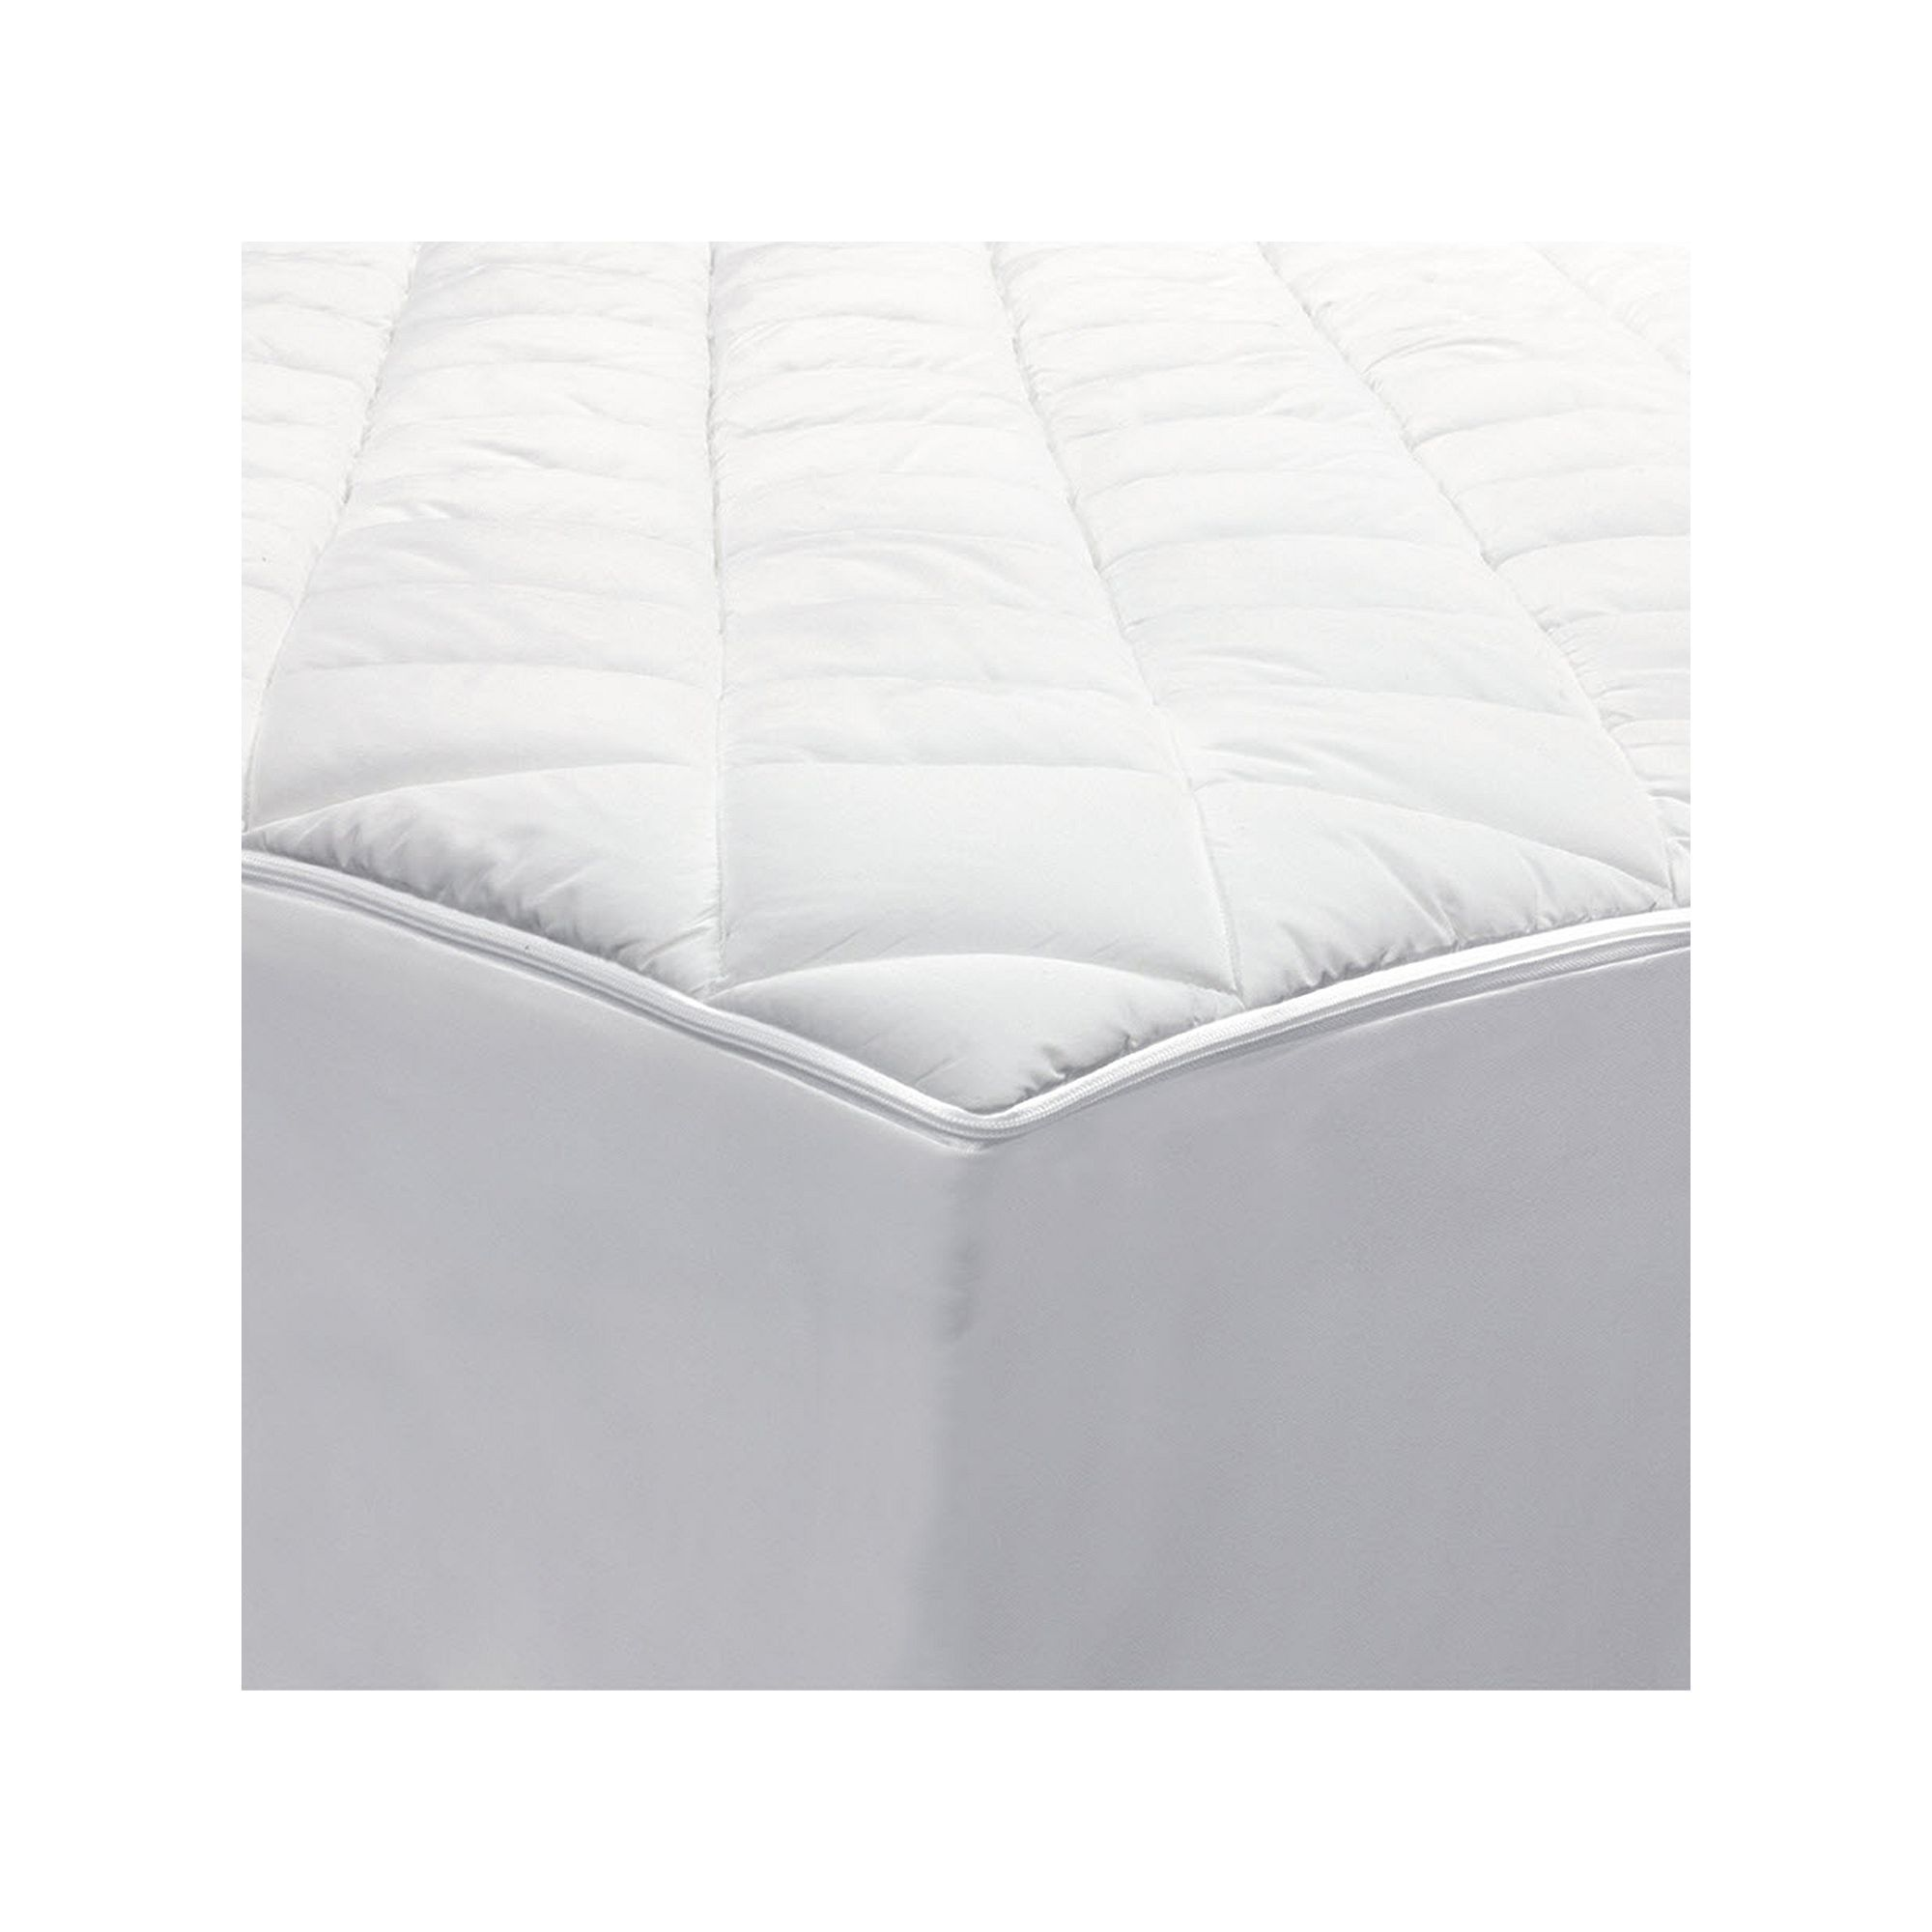 allerease 2 in 1 zippered mattress protector luxury mattress pad